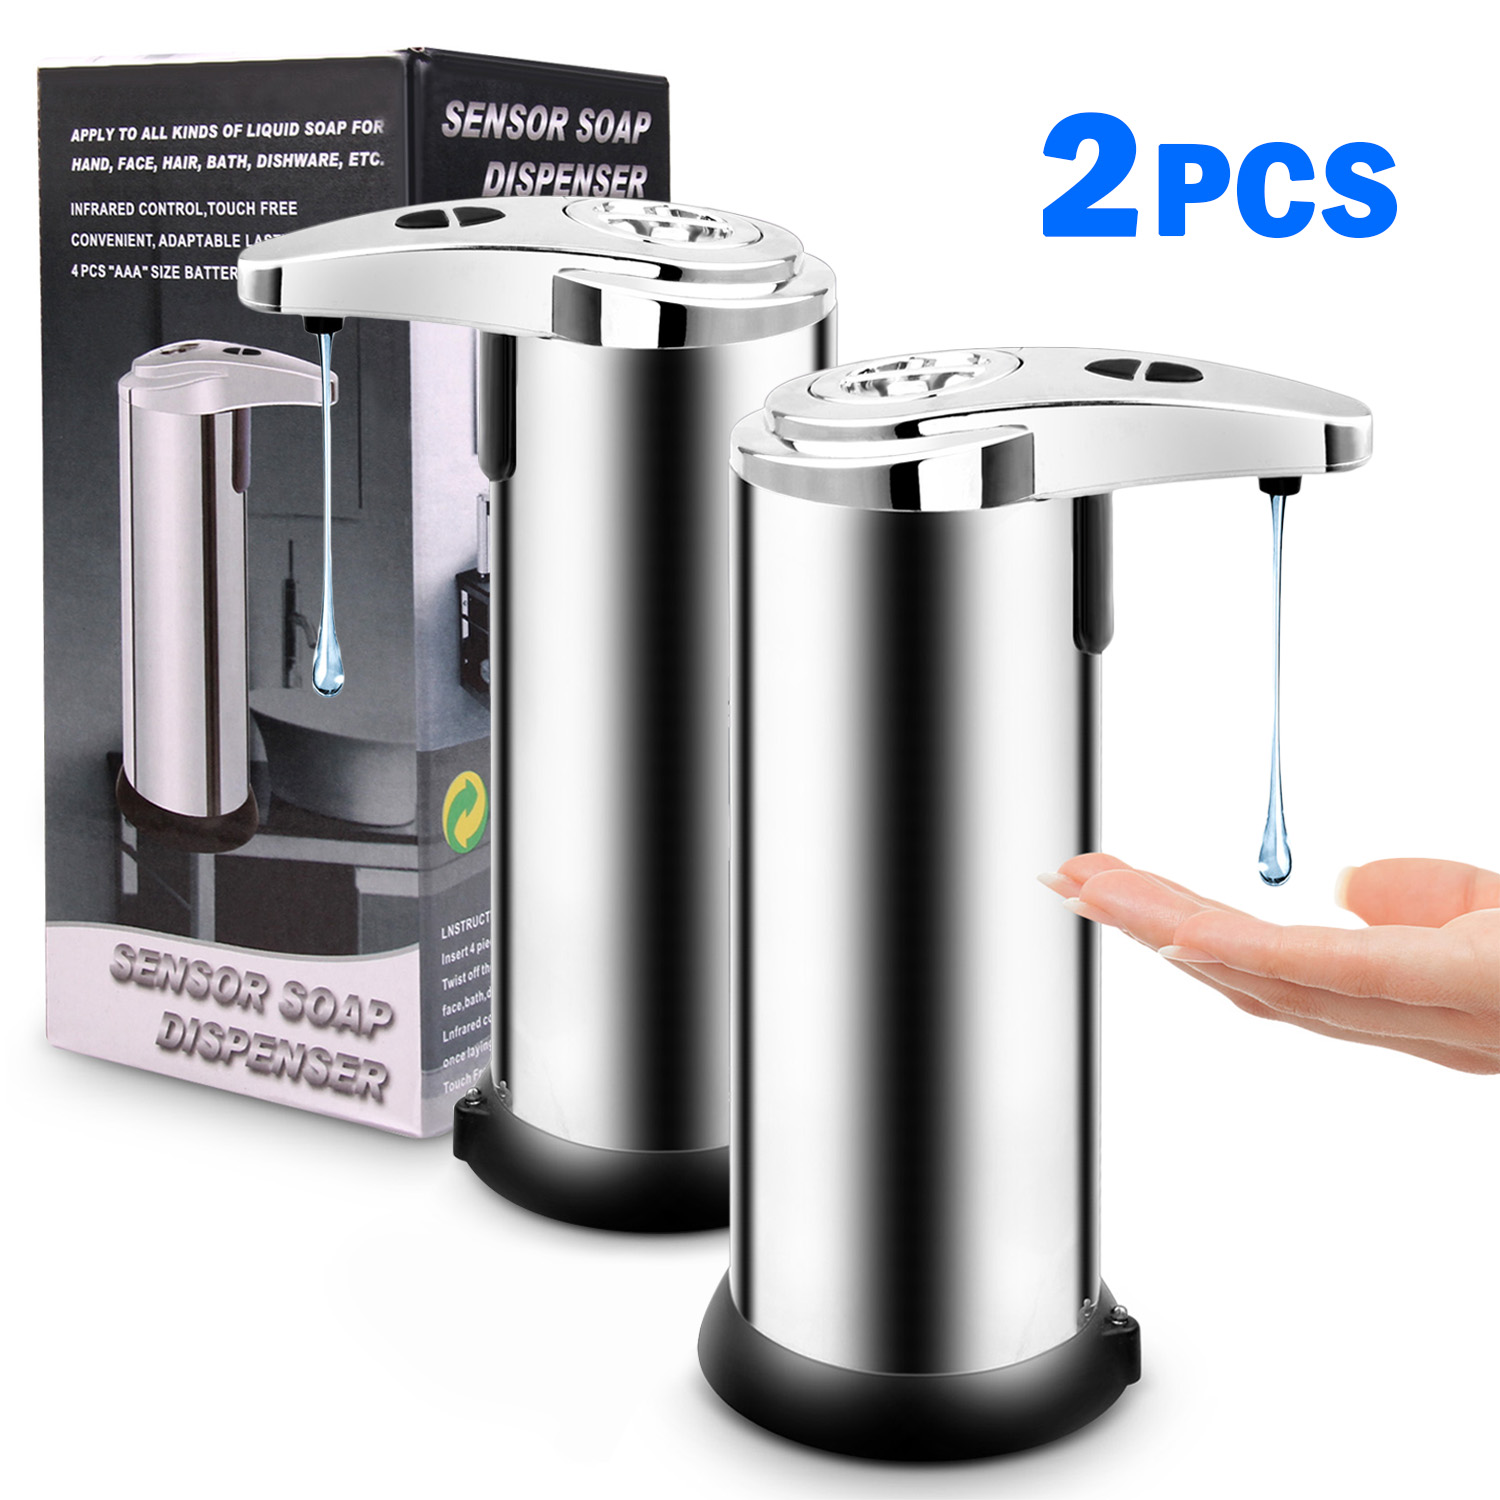 2pcs Soap Dispenser Infrared Motion Sensor Touchless Hands-Free Automatic Liquid Soap Washer Bottle for Bathroom Office School image